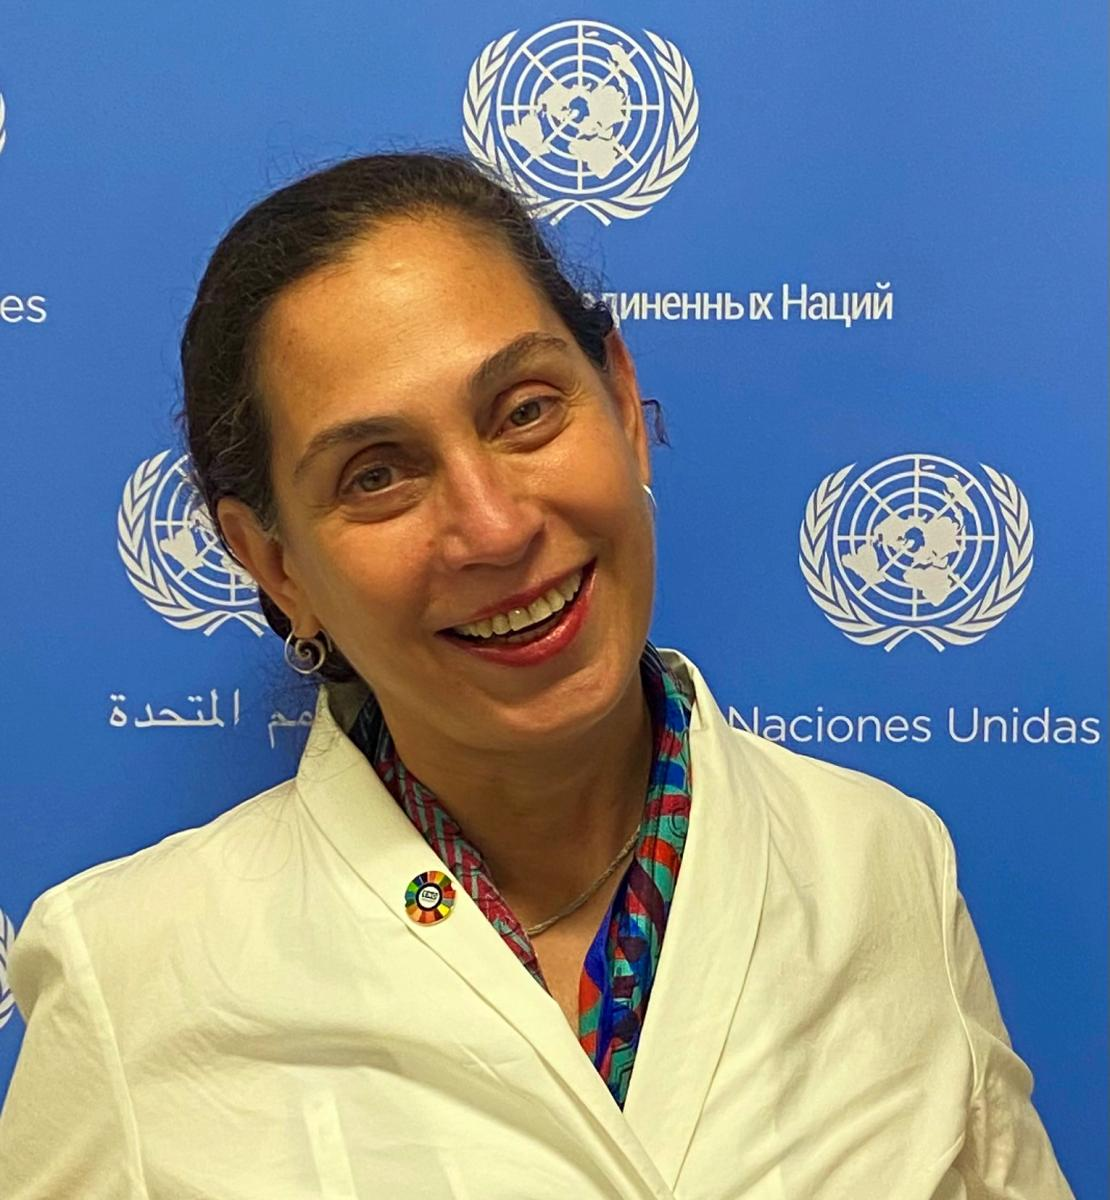 A woman in a yellow suit smiles at the camera in front of a blue and white United Nations sign.